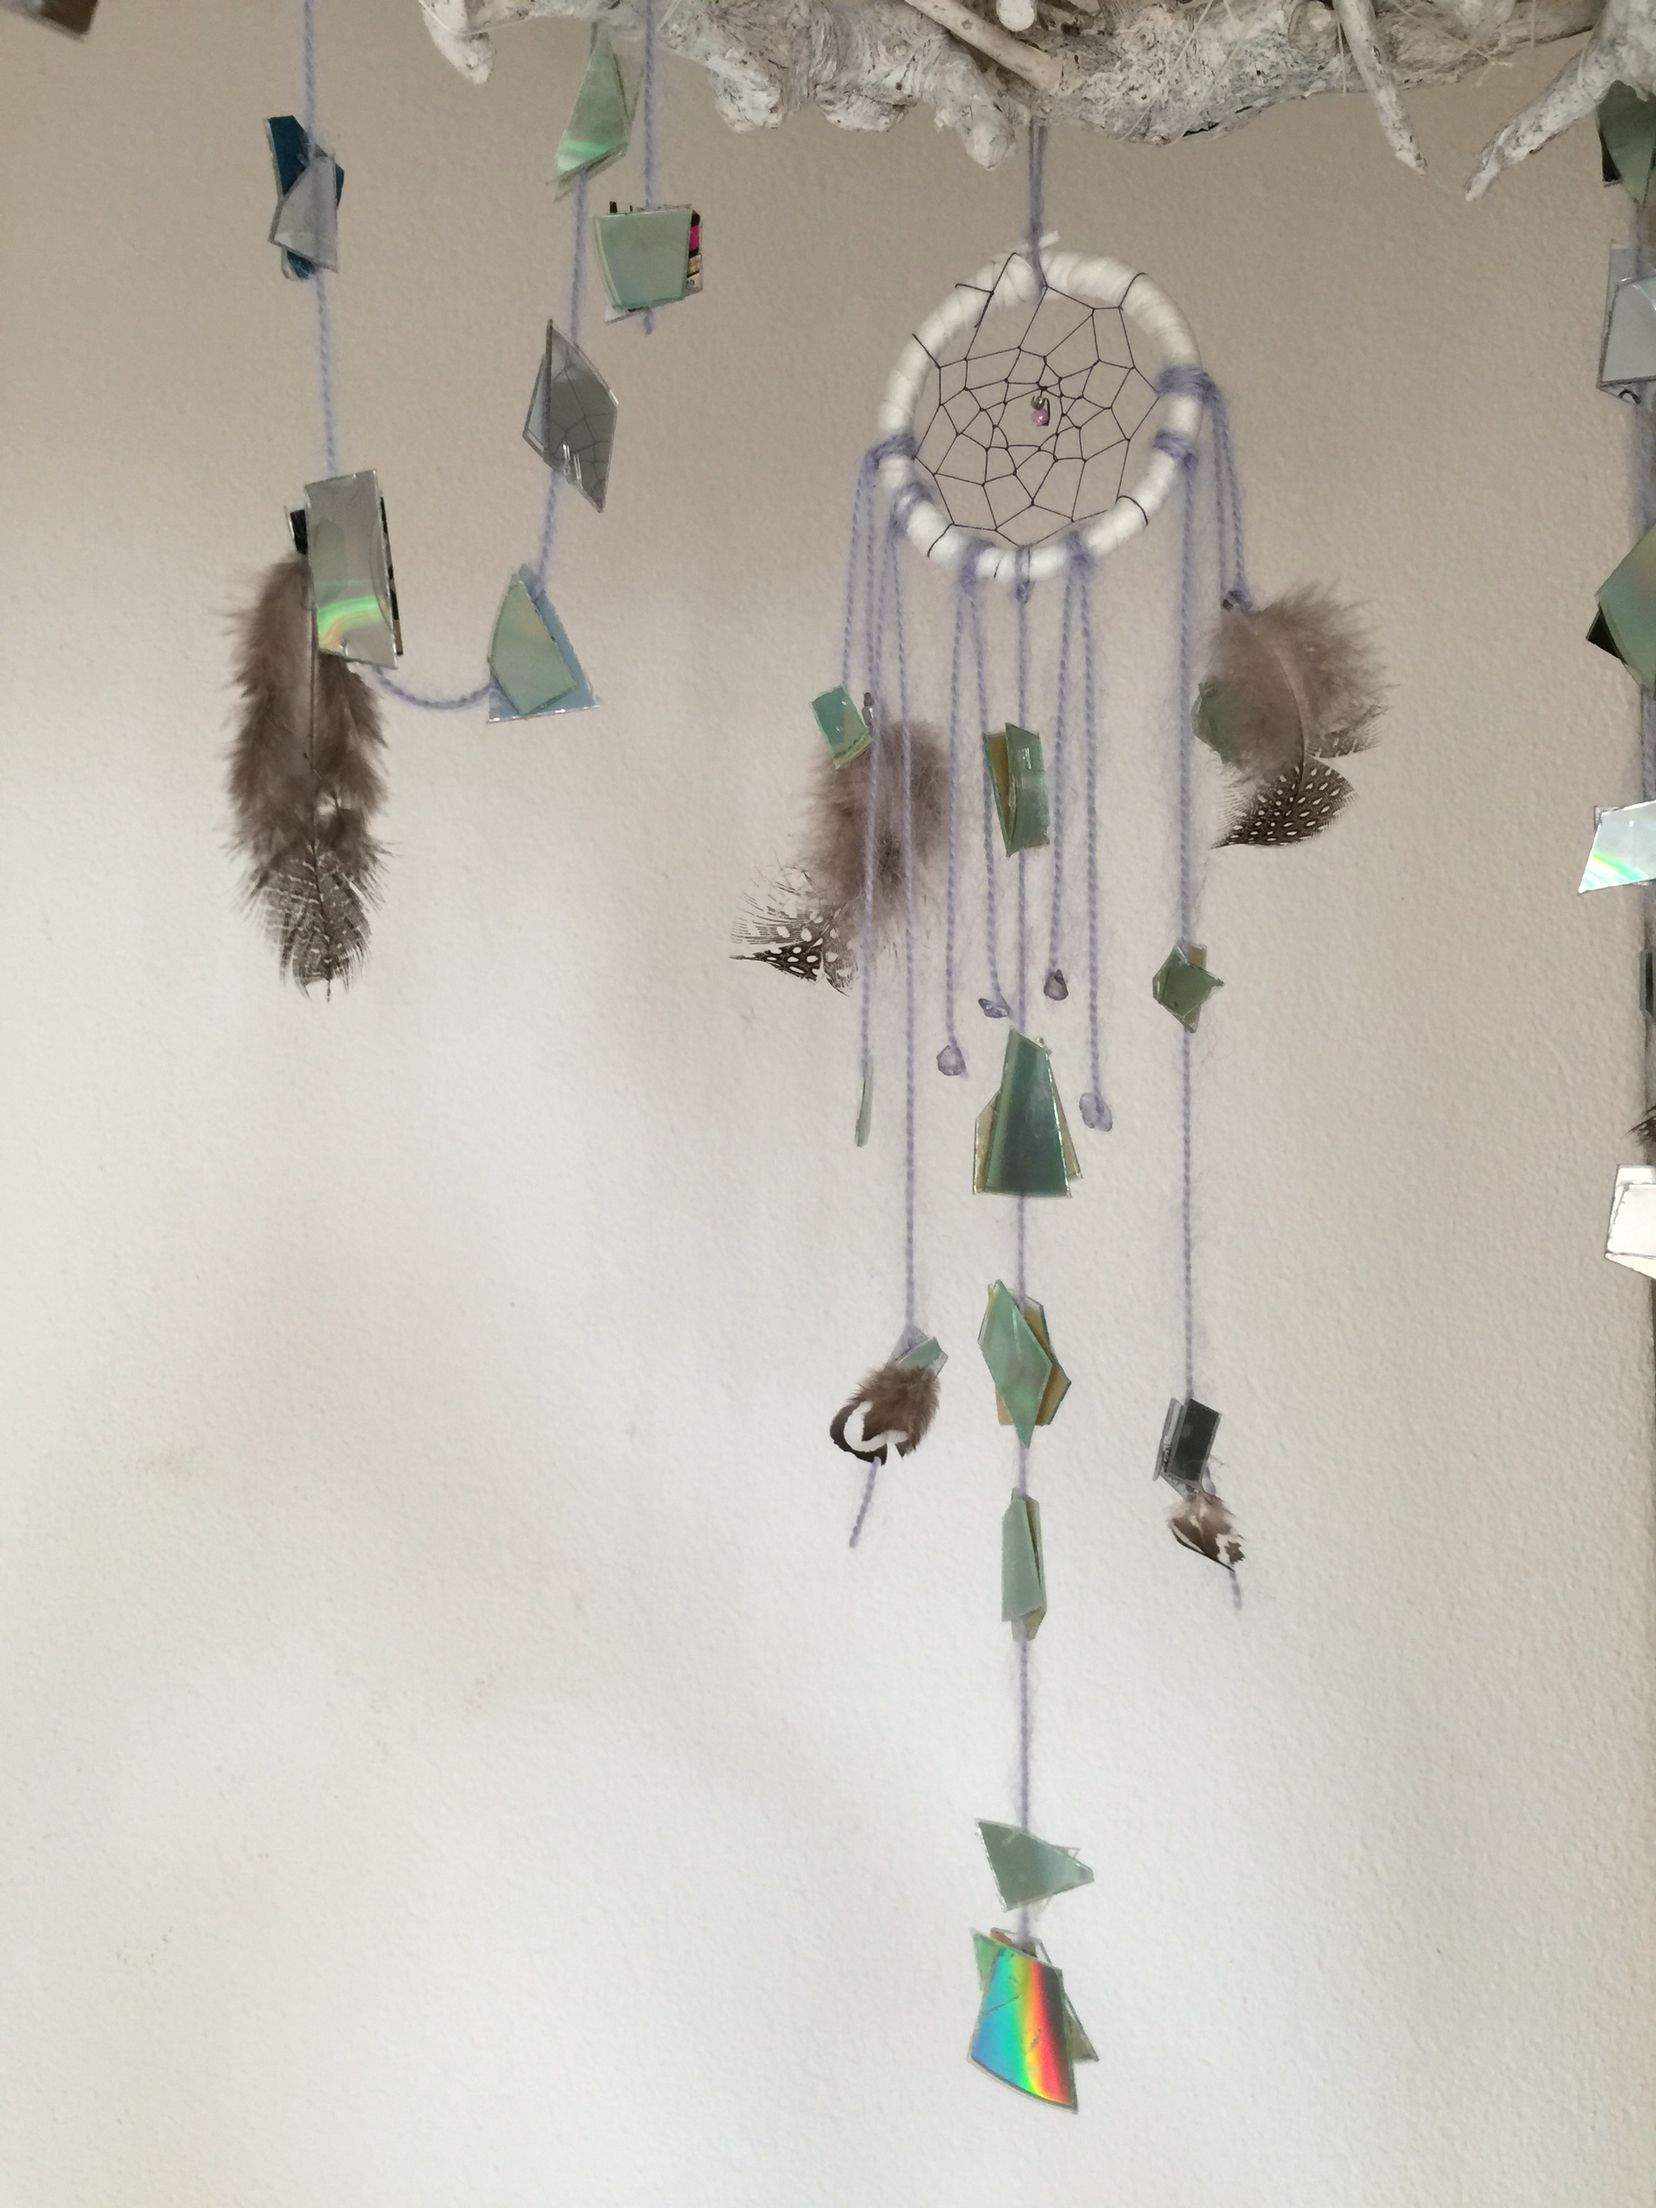 DIY Dream Catcher with CD peaces and feathers. Made by Allison Kim